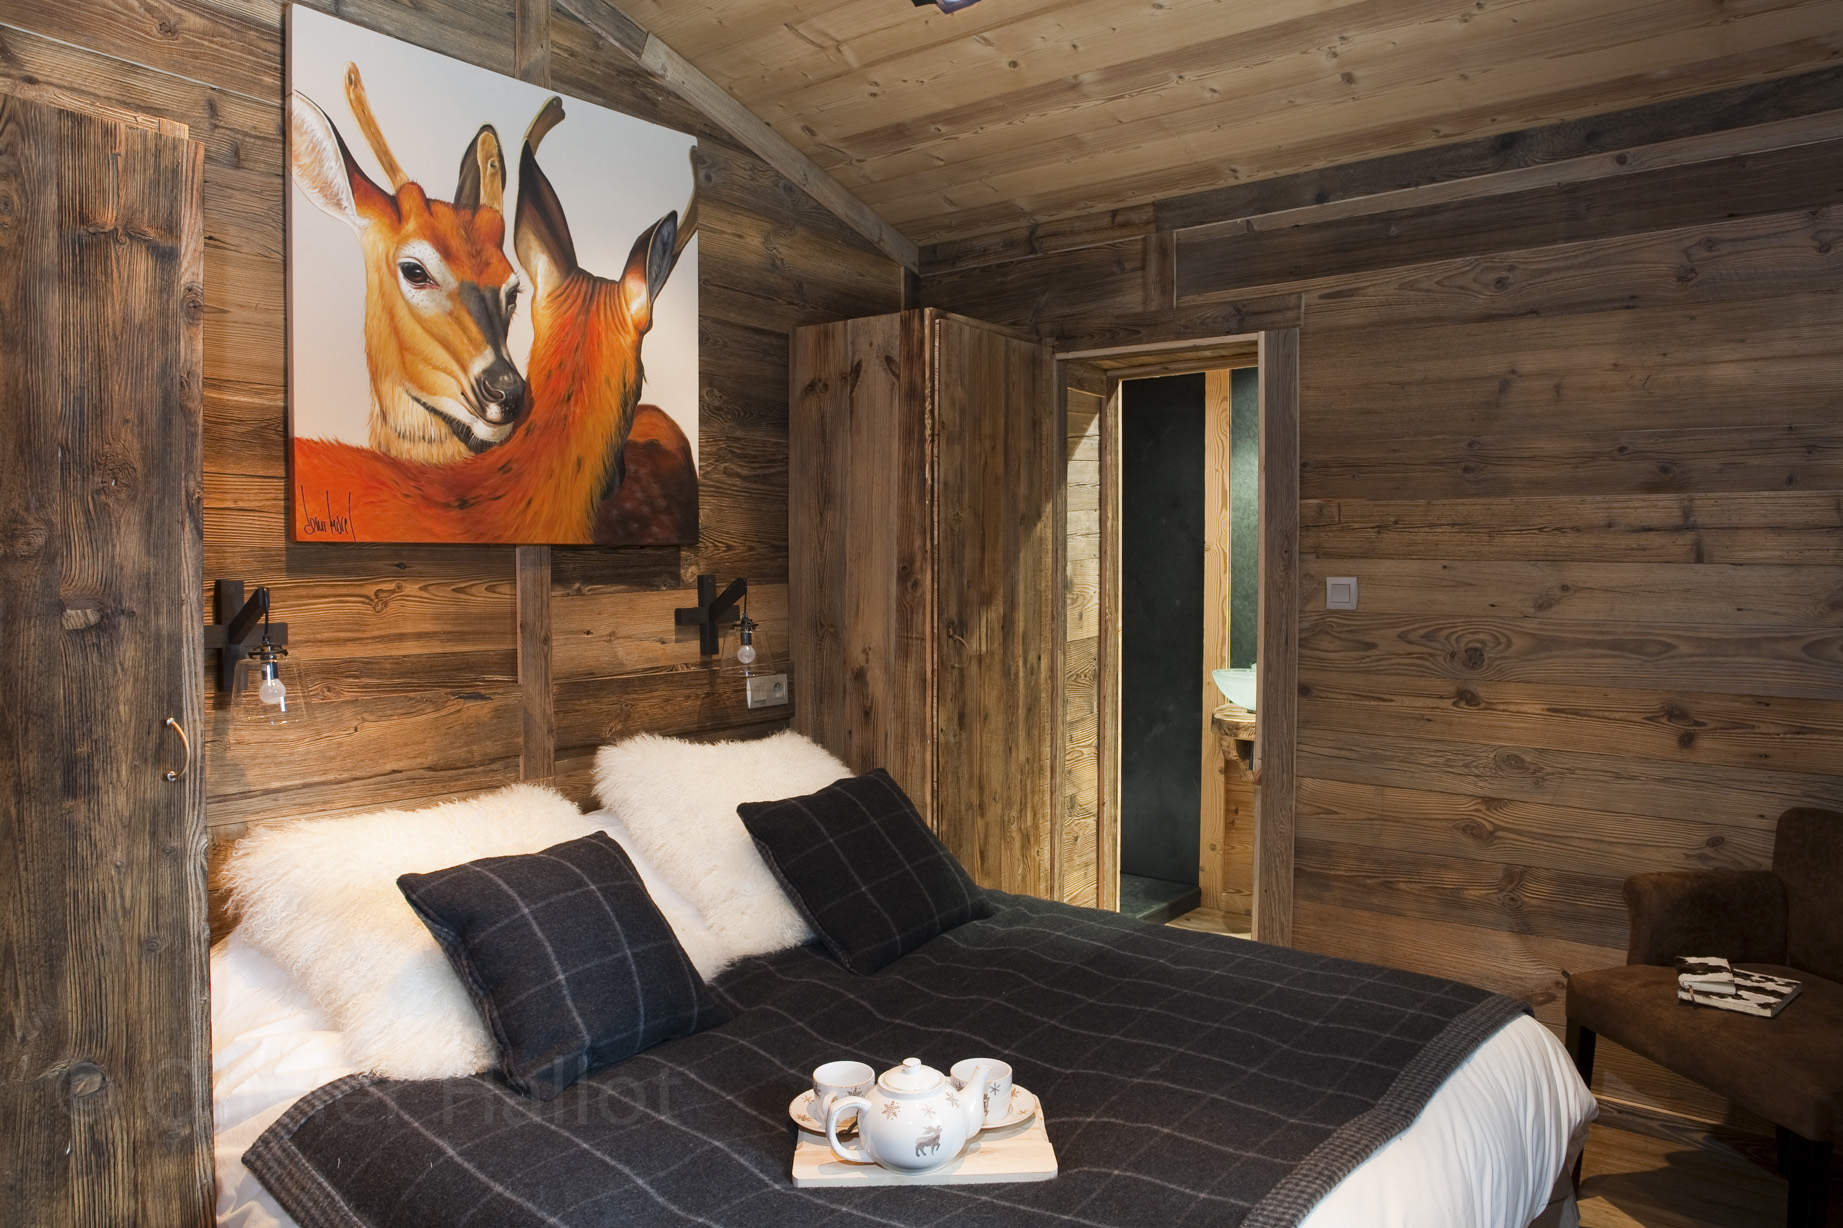 Interieur De Chalet En Bois - Fashion Designs